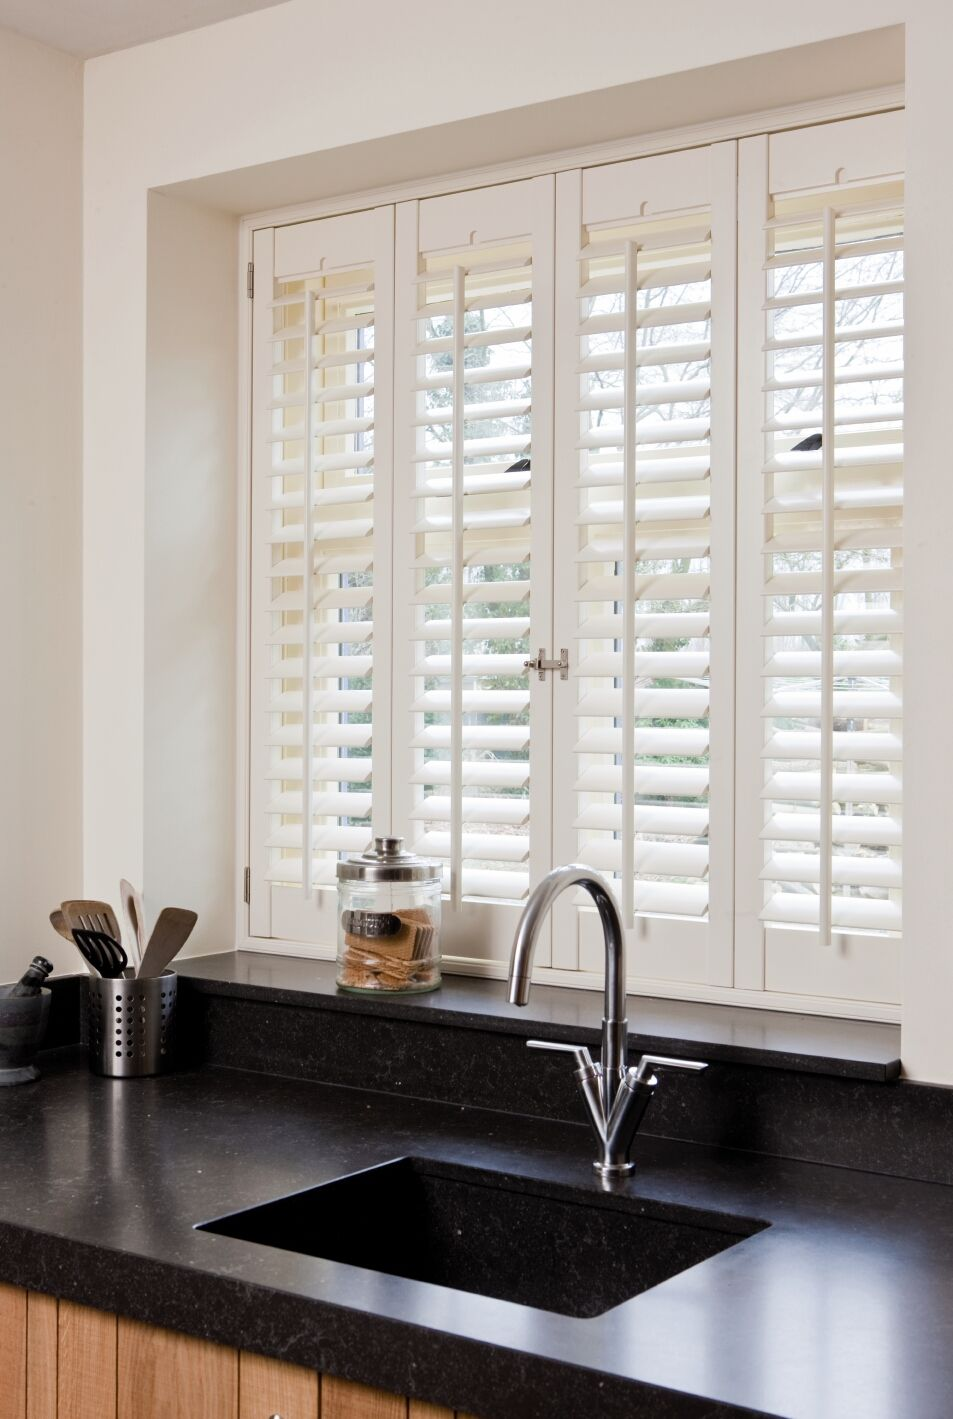 Best Kitchen Gallery: Shutters In De Keuken … Pinteres… of Interior Kitchen Window Shutters  on rachelxblog.com